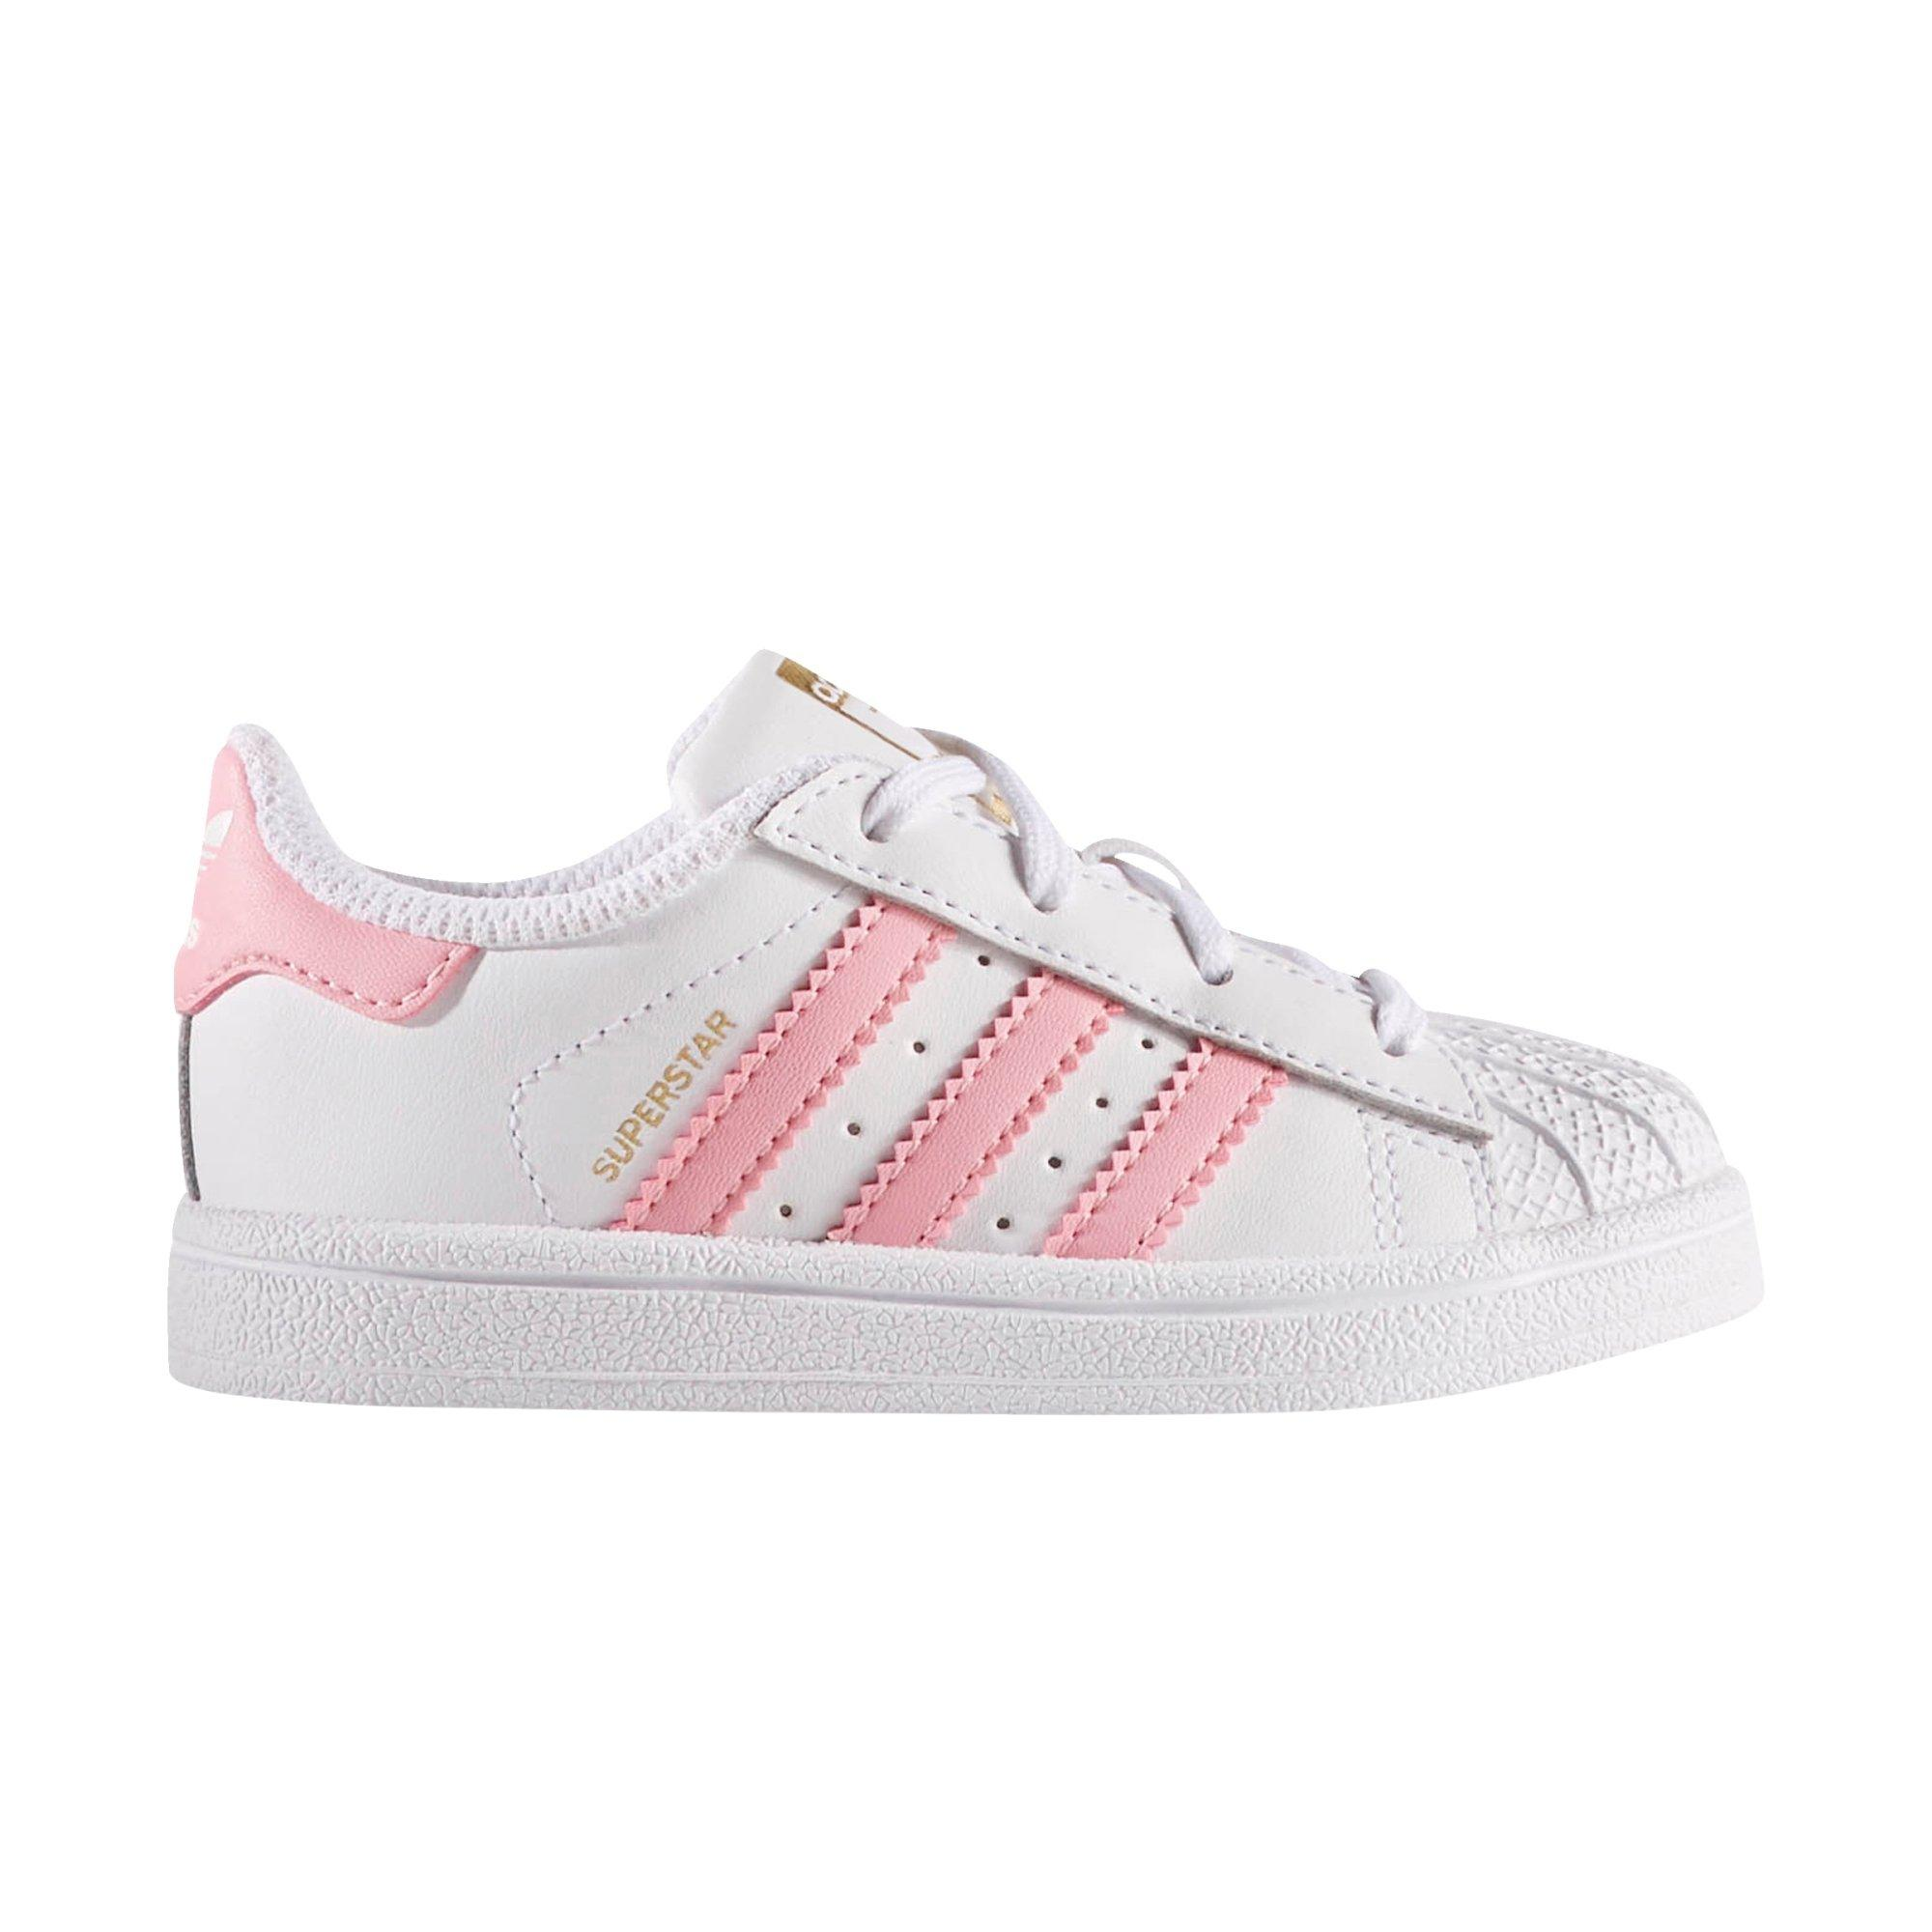 adidas originaux toddler services sûr financial services toddler ltd. fdfcb4